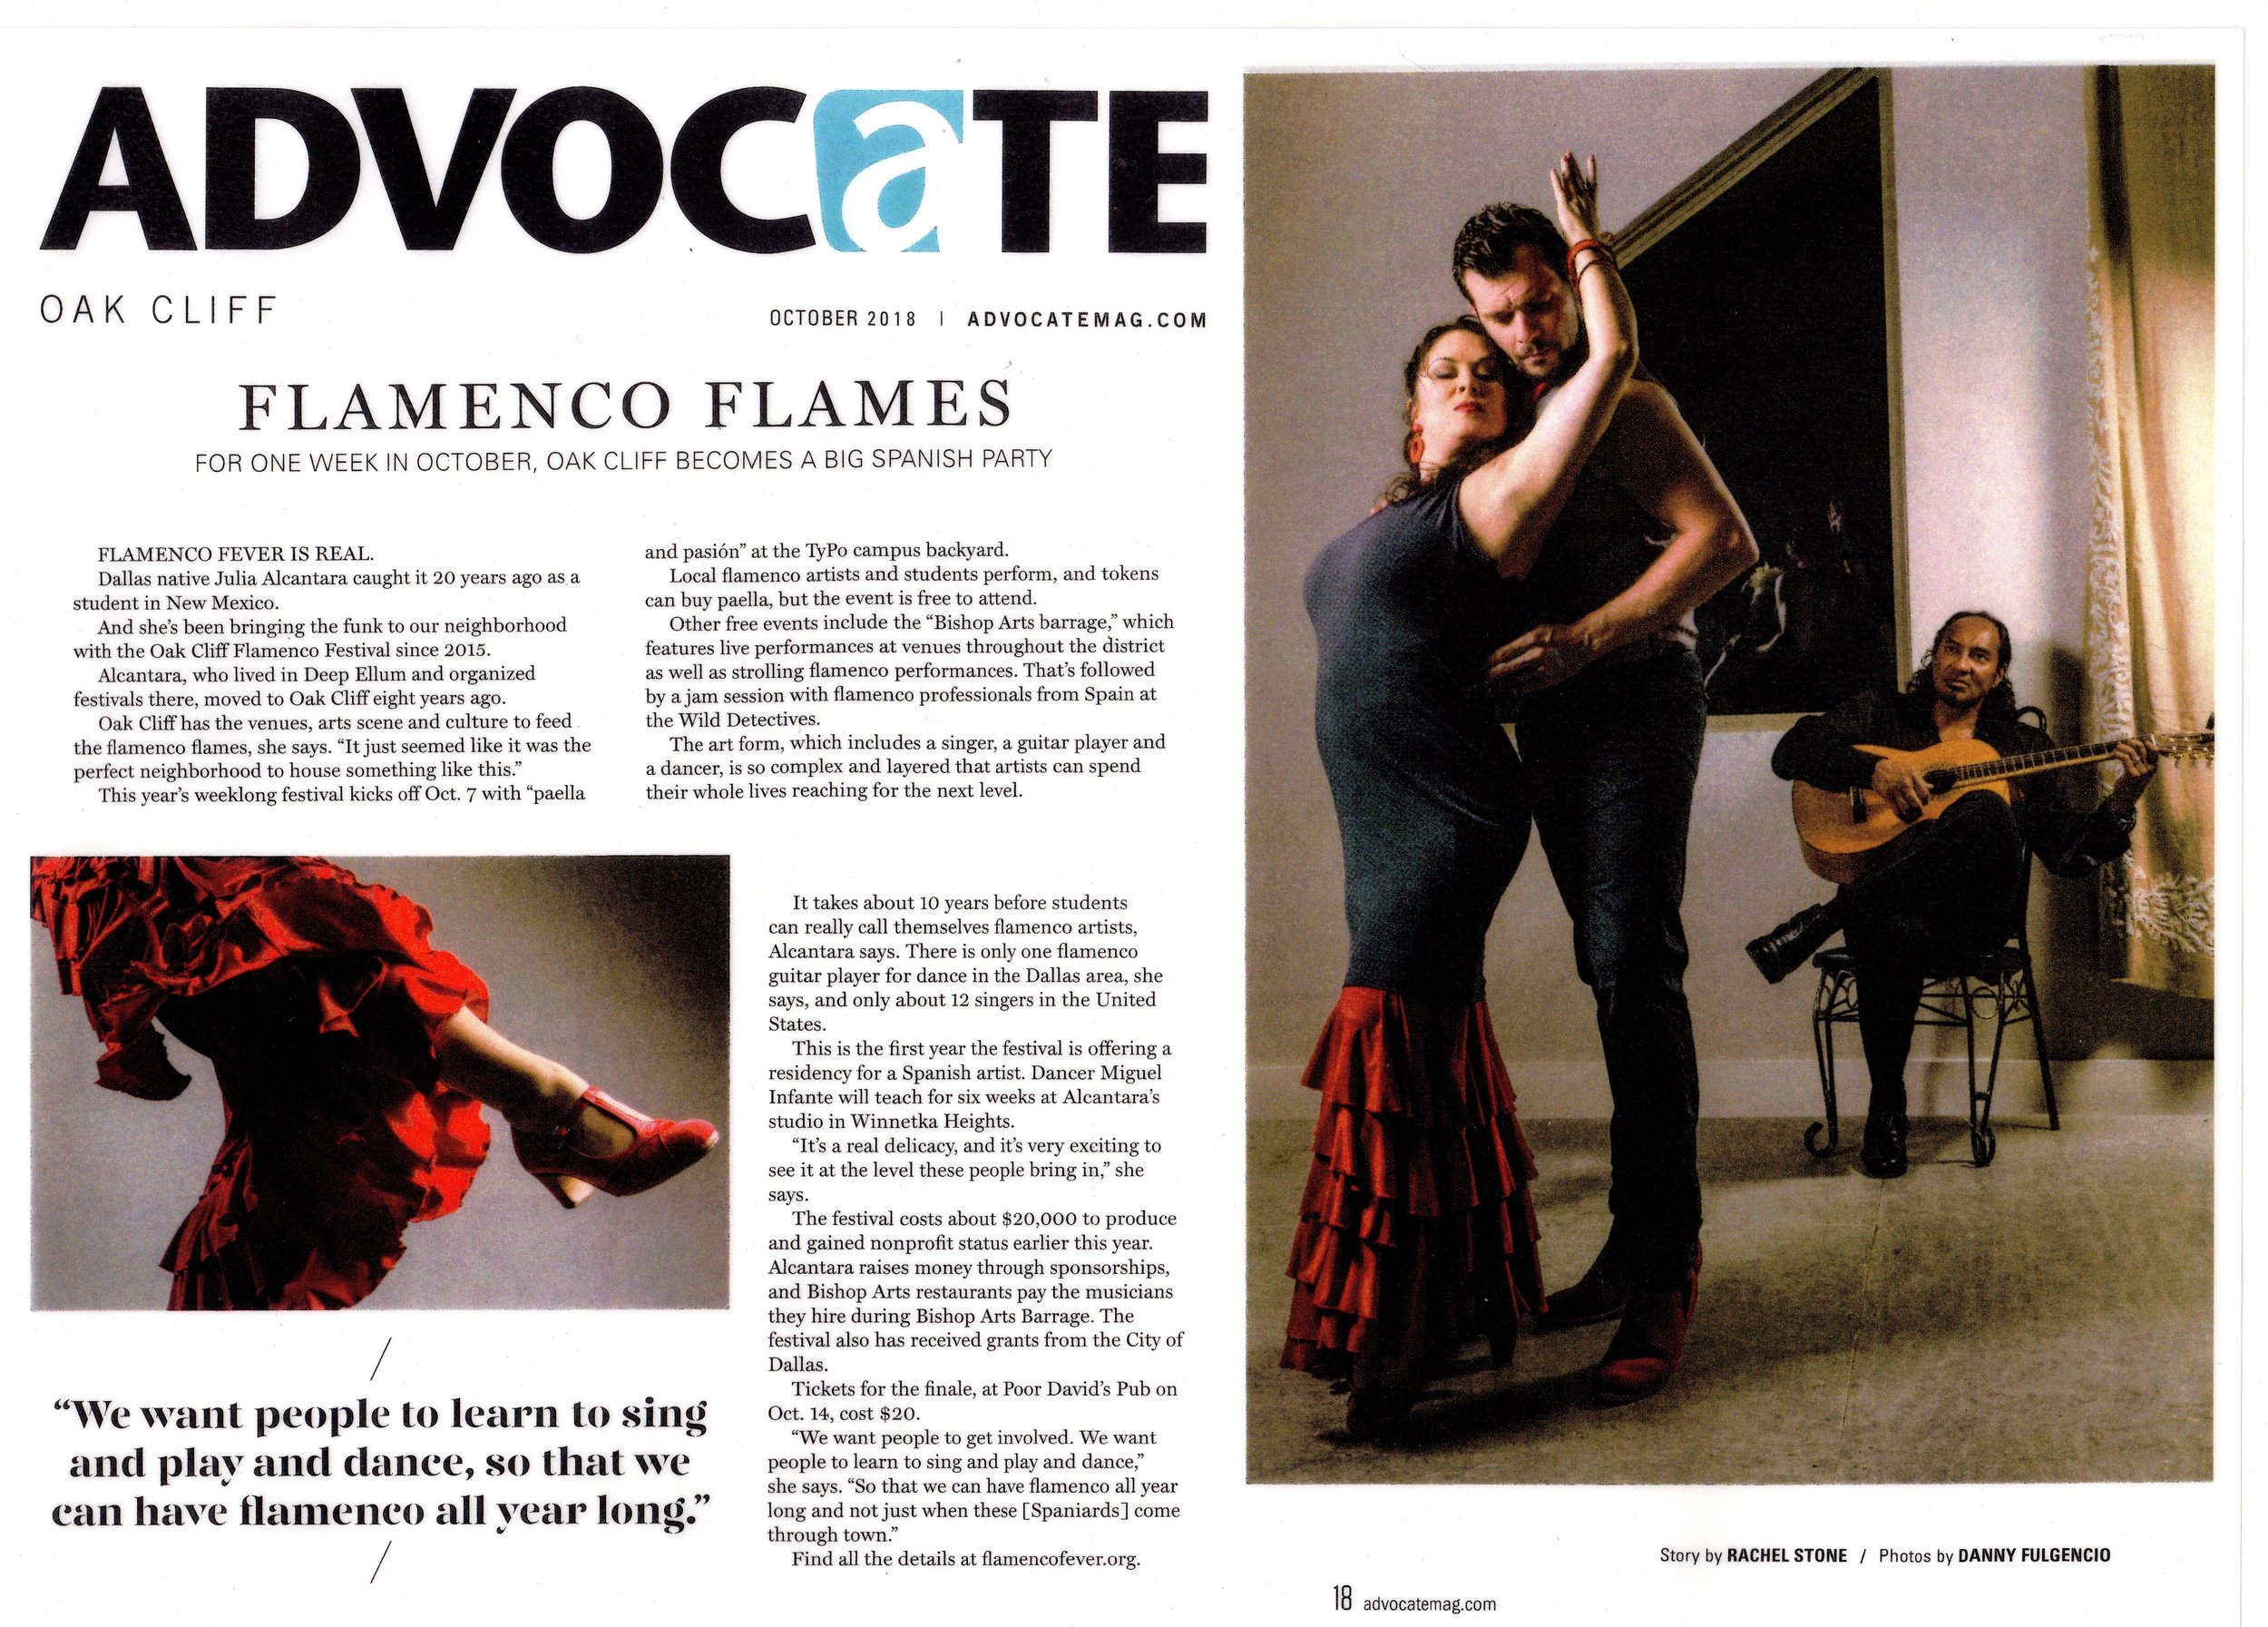 Media — Flamenco Fever